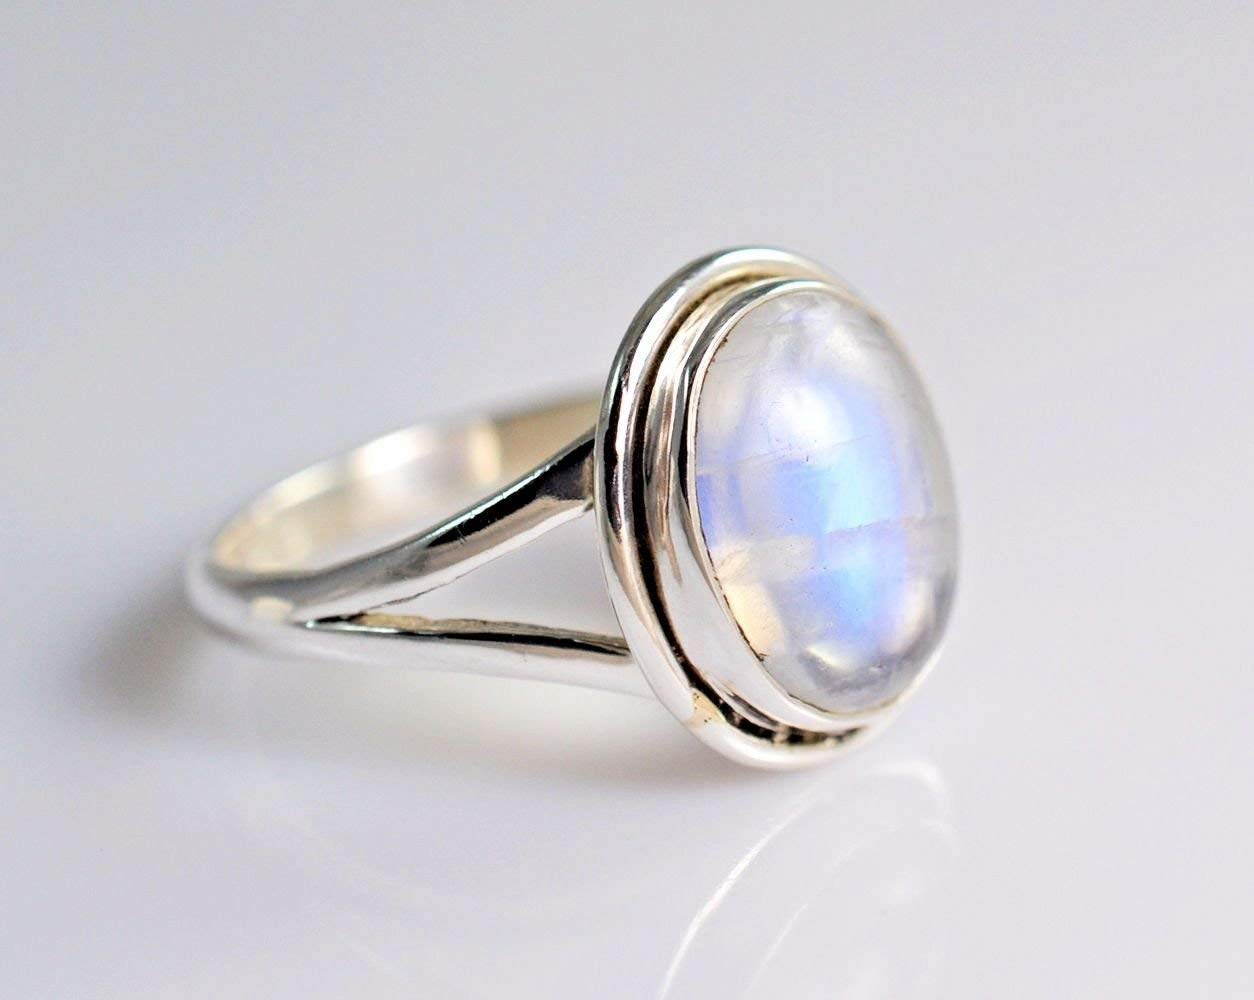 Natural Rainbow Moonstone 925 Sterling Silver Stud Fine Jewelry Earrings Gift AA Fathers Day Mothers Day Gift Wedding Engagement Occasion